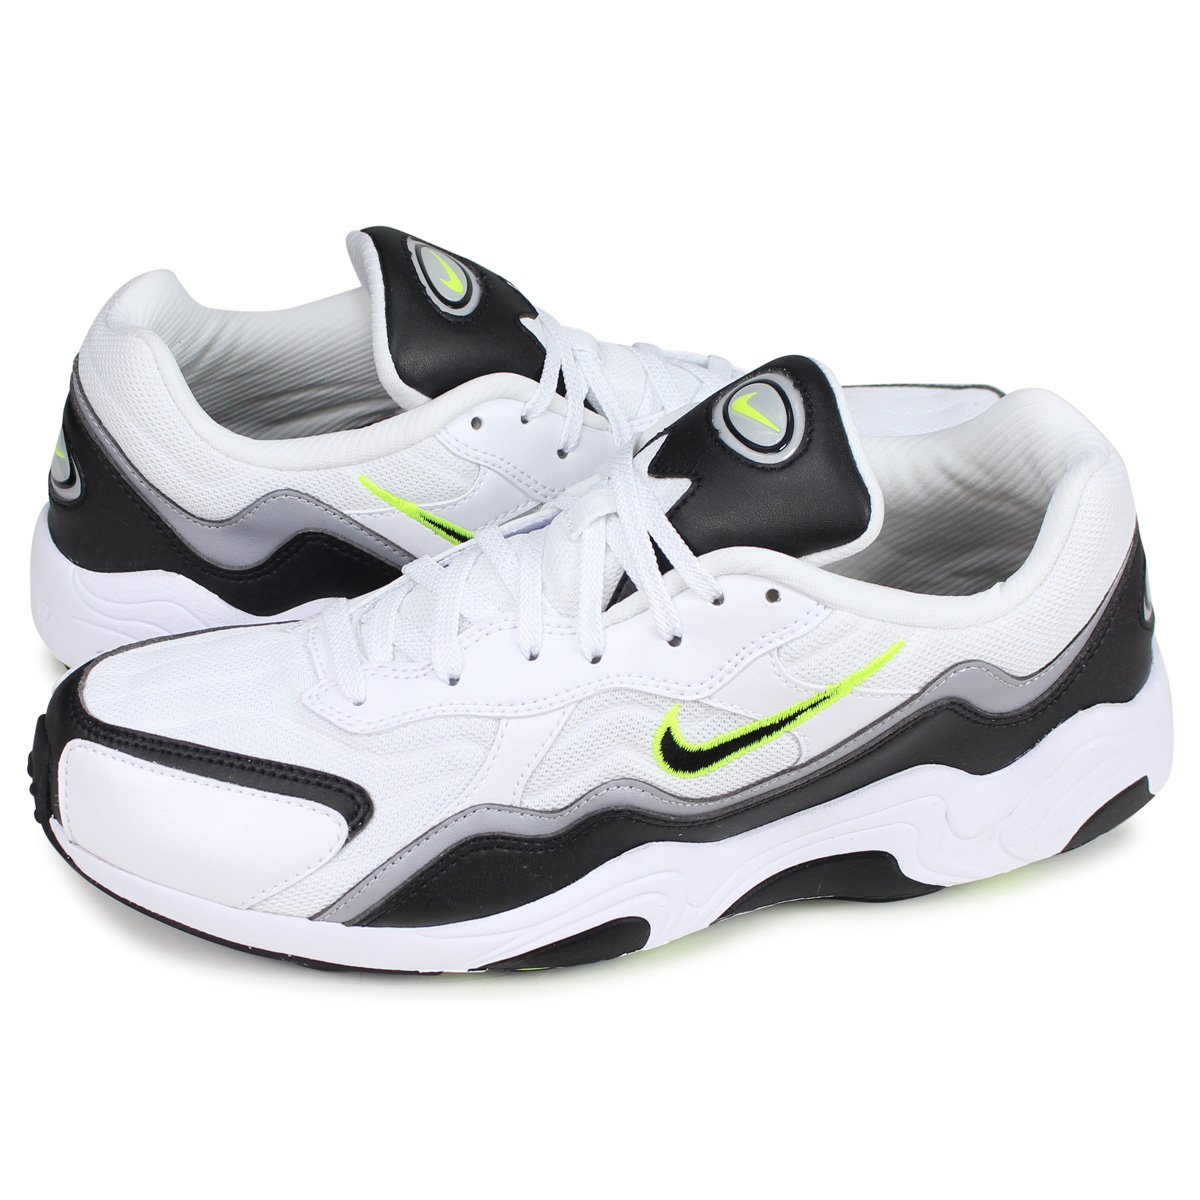 big sale a6f5e 76c3f Nike NIKE air zoom alpha sneakers men AIR ZOOM ALPHA white white BQ8800-002   5 8 Shinnyu load